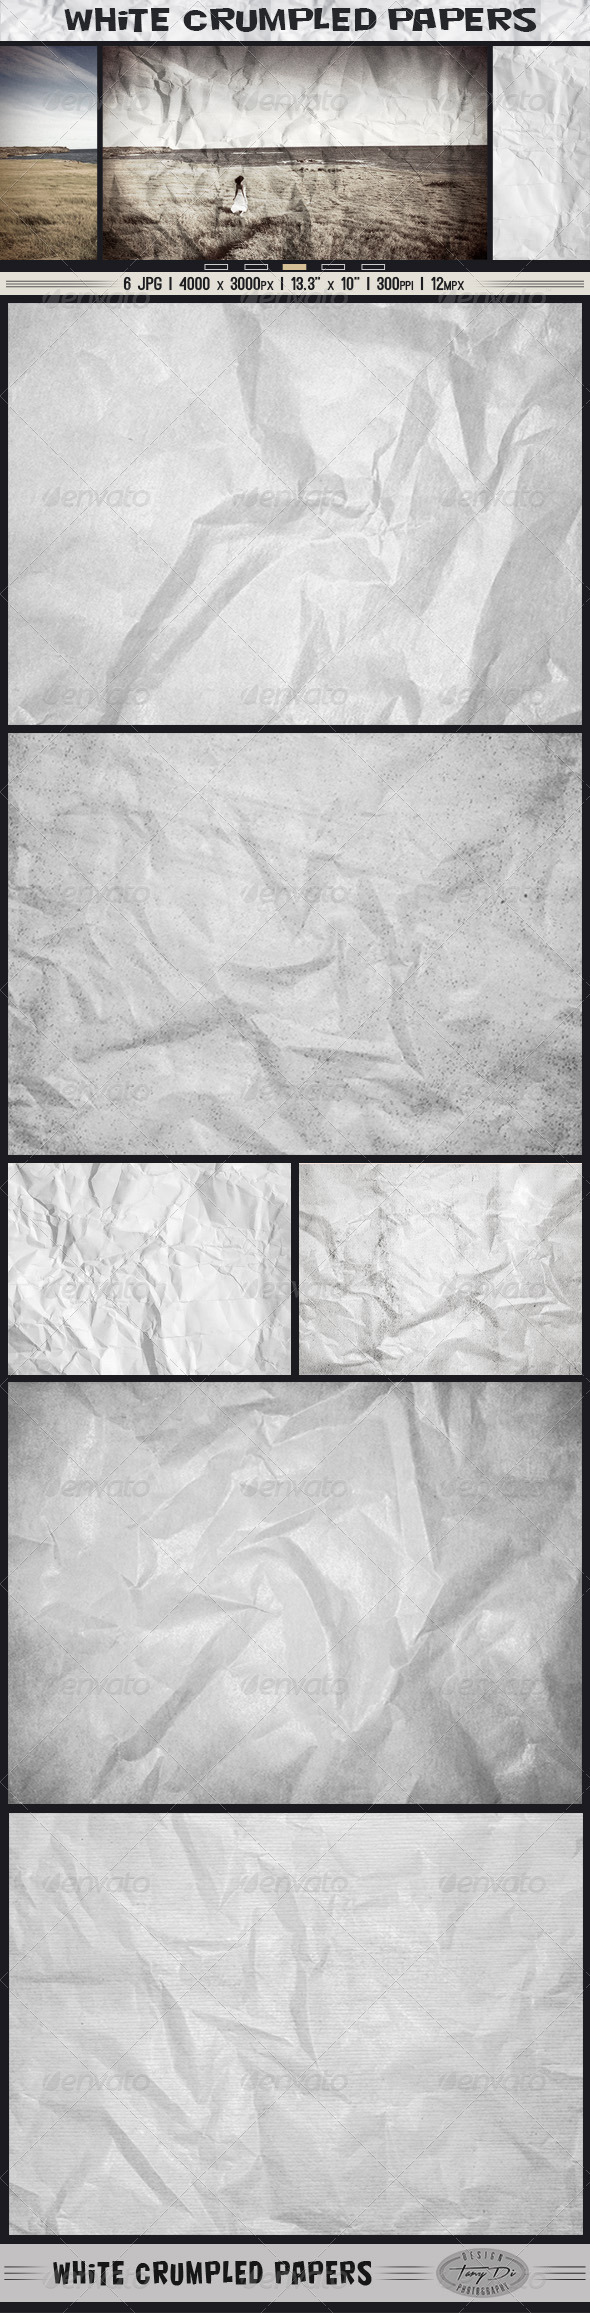 White Crumpled Papers